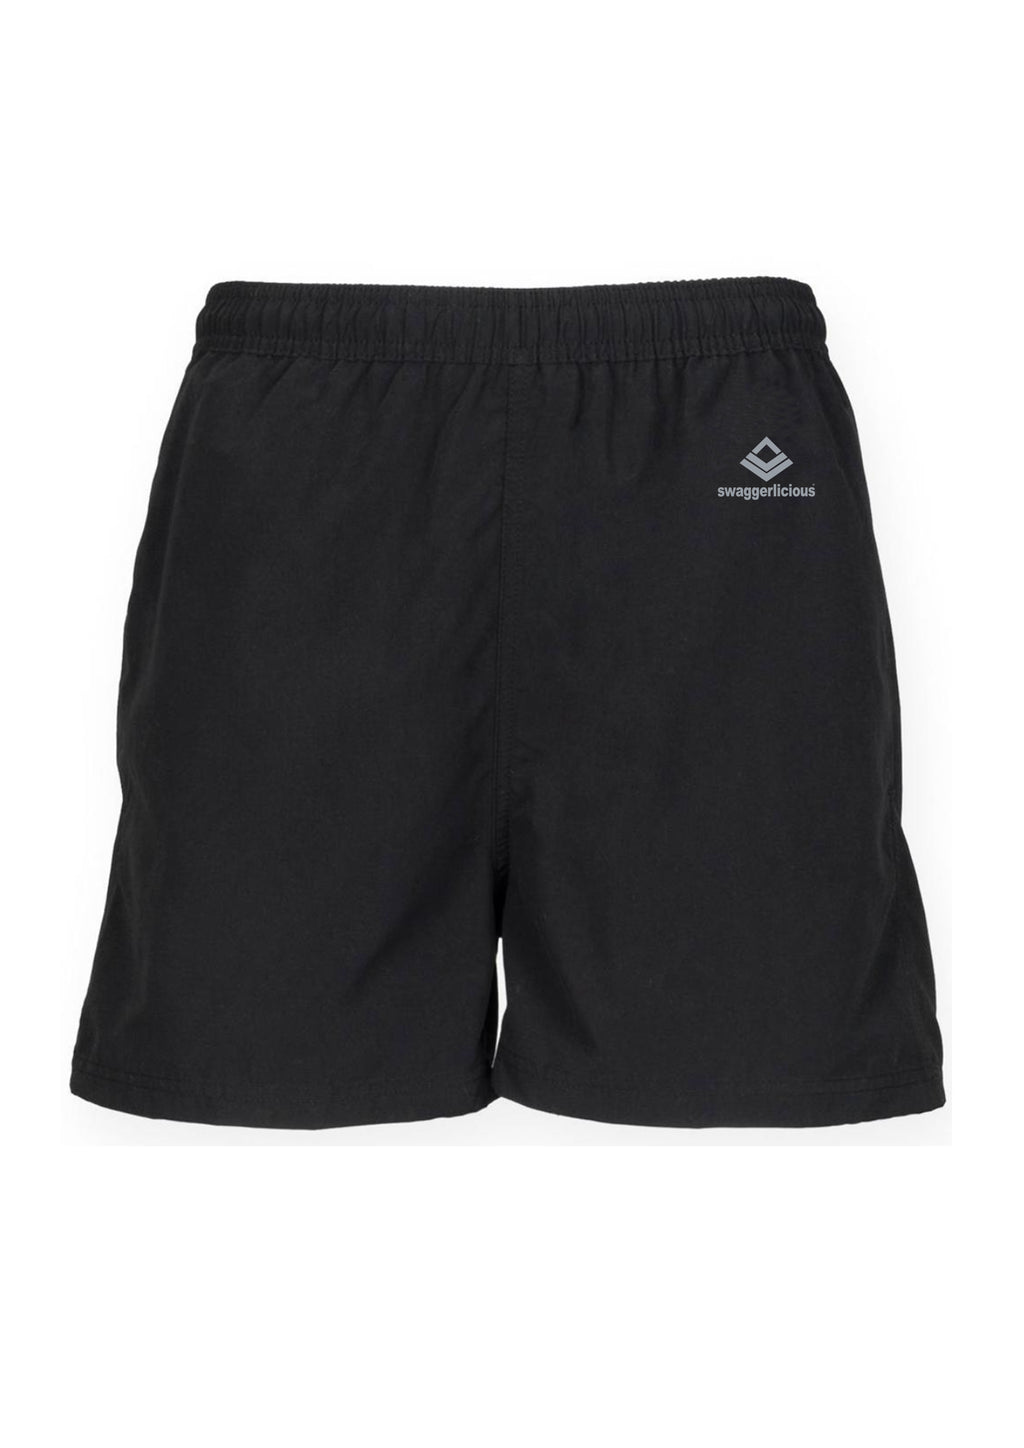 Swaggerlicious Classic Black Track Shorts - swaggerlicious-clothing.com